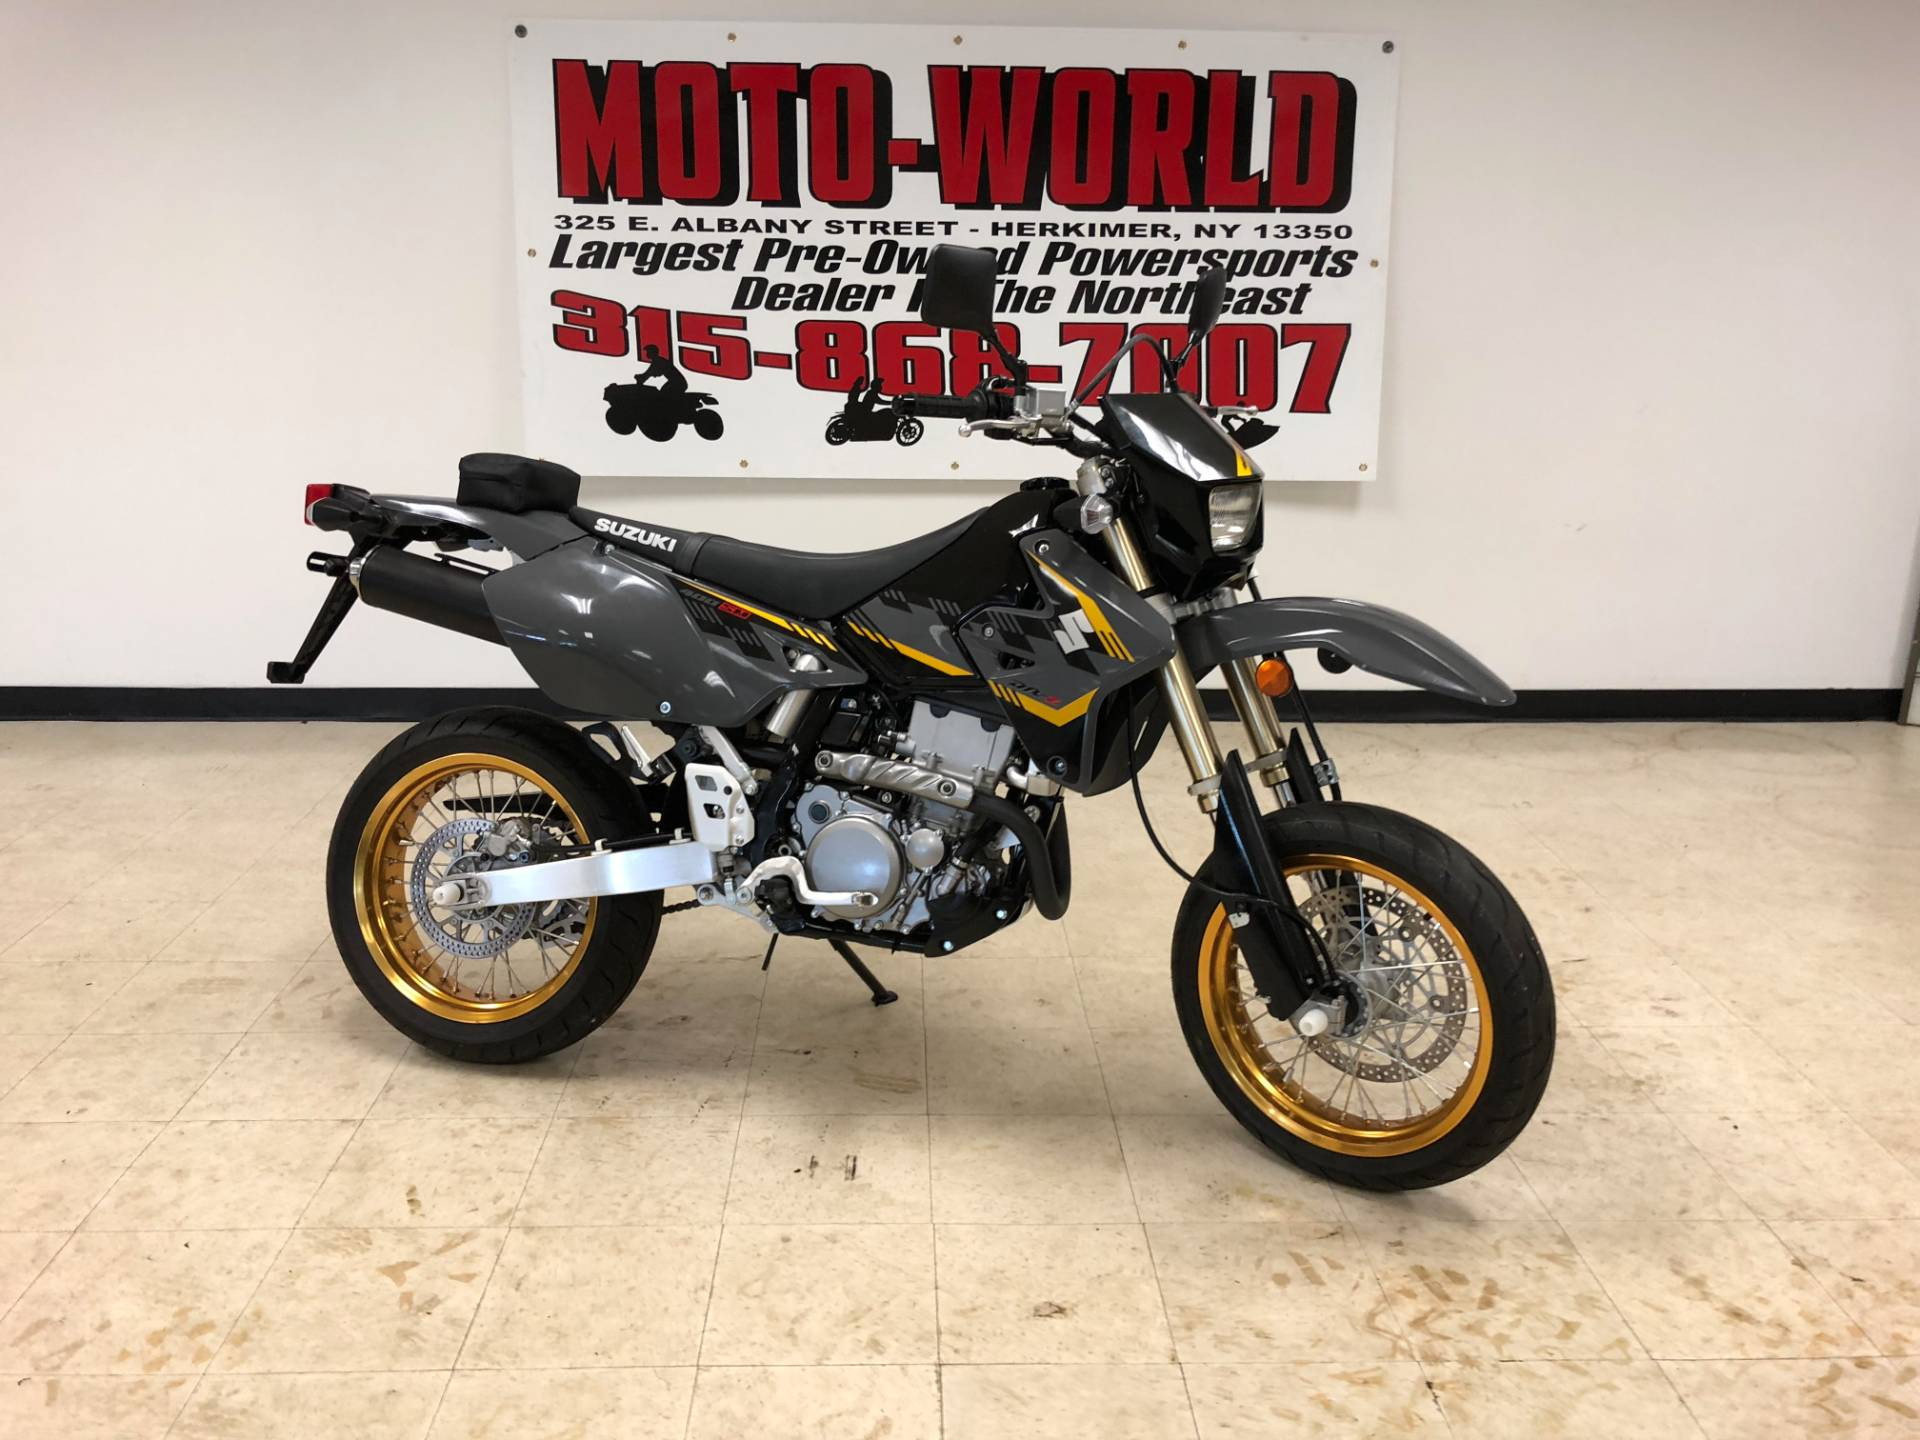 Used 2016 Suzuki Dr Z400sm Motorcycles In Herkimer Ny Stock Street Legal Dirt Bikes New York